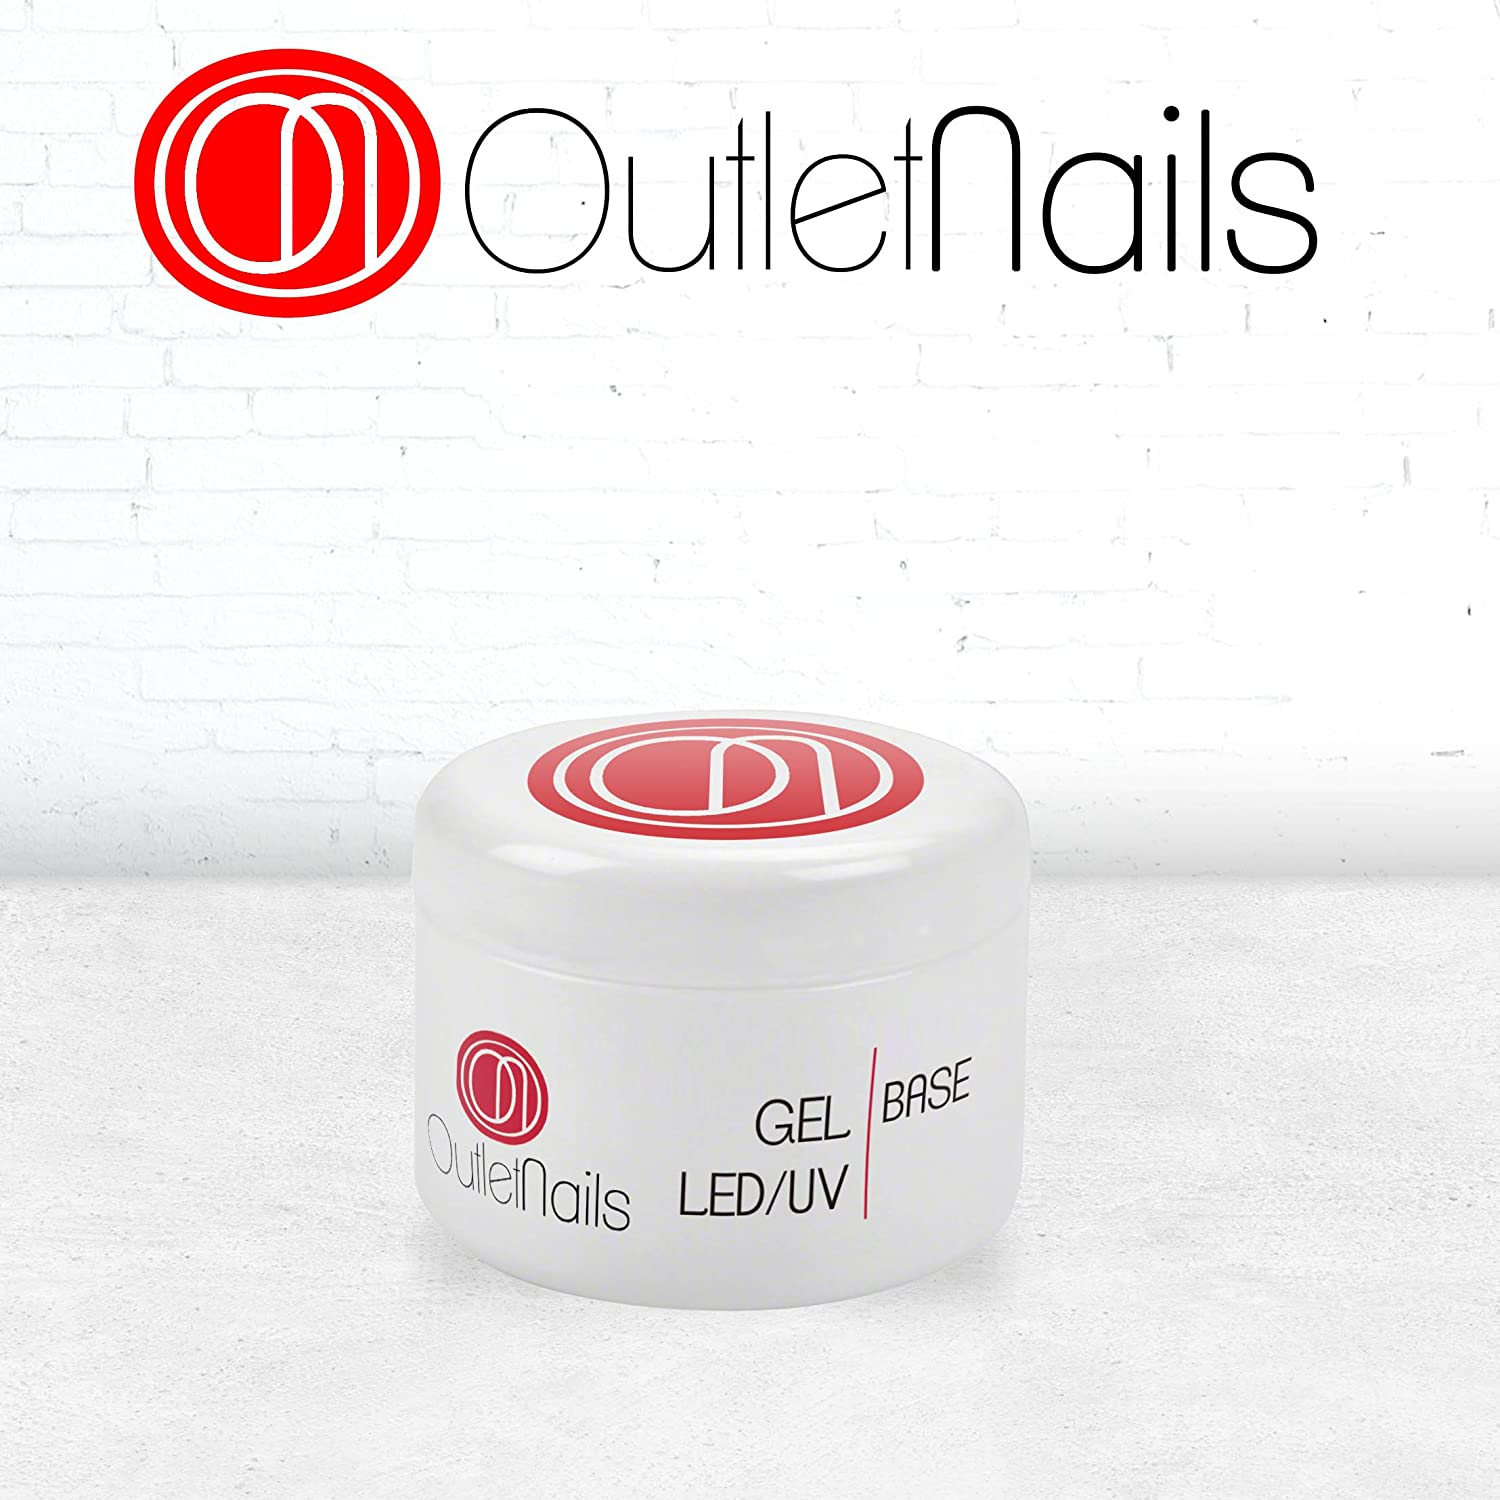 Gel Base UV/LED 15ml/Gel para Uñas de gel/Bonder Gel/Base Gel para uñas 15g Ser Beauty S.L.